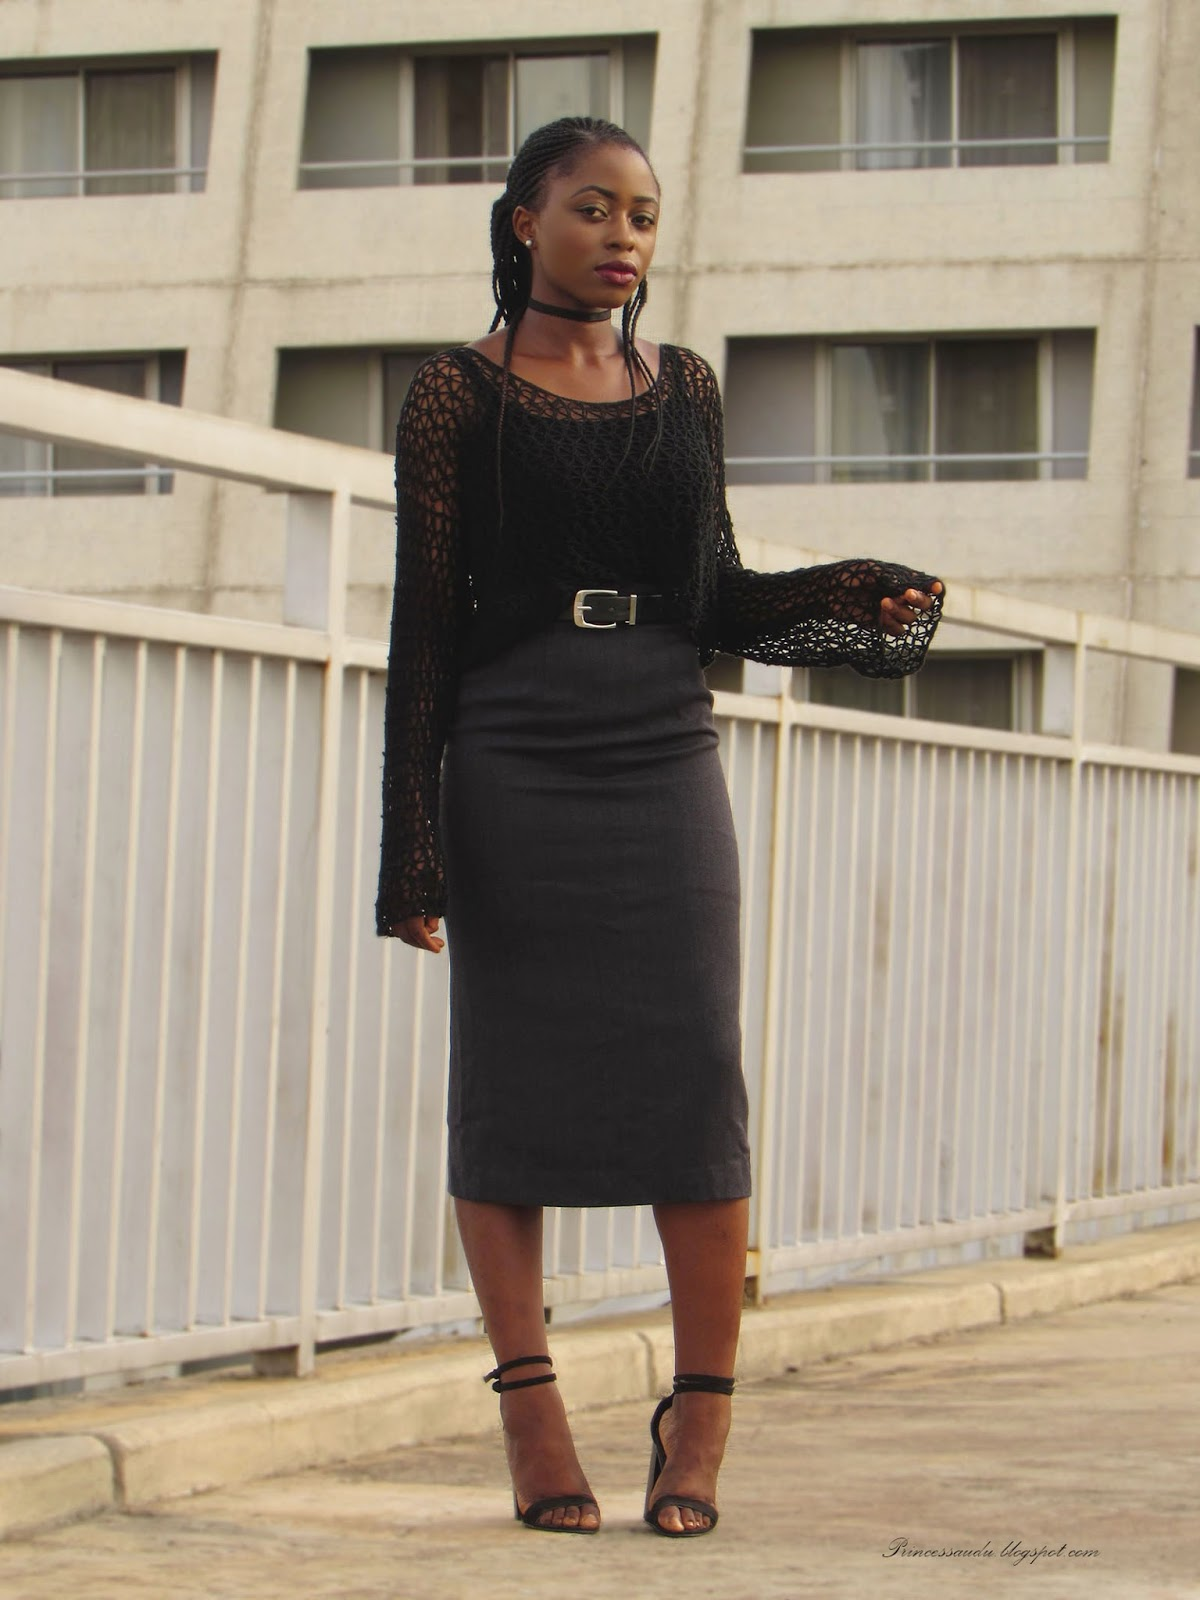 Body-con skirt, grey pencil midi skirt, black knitwear top, choker, buckle belt